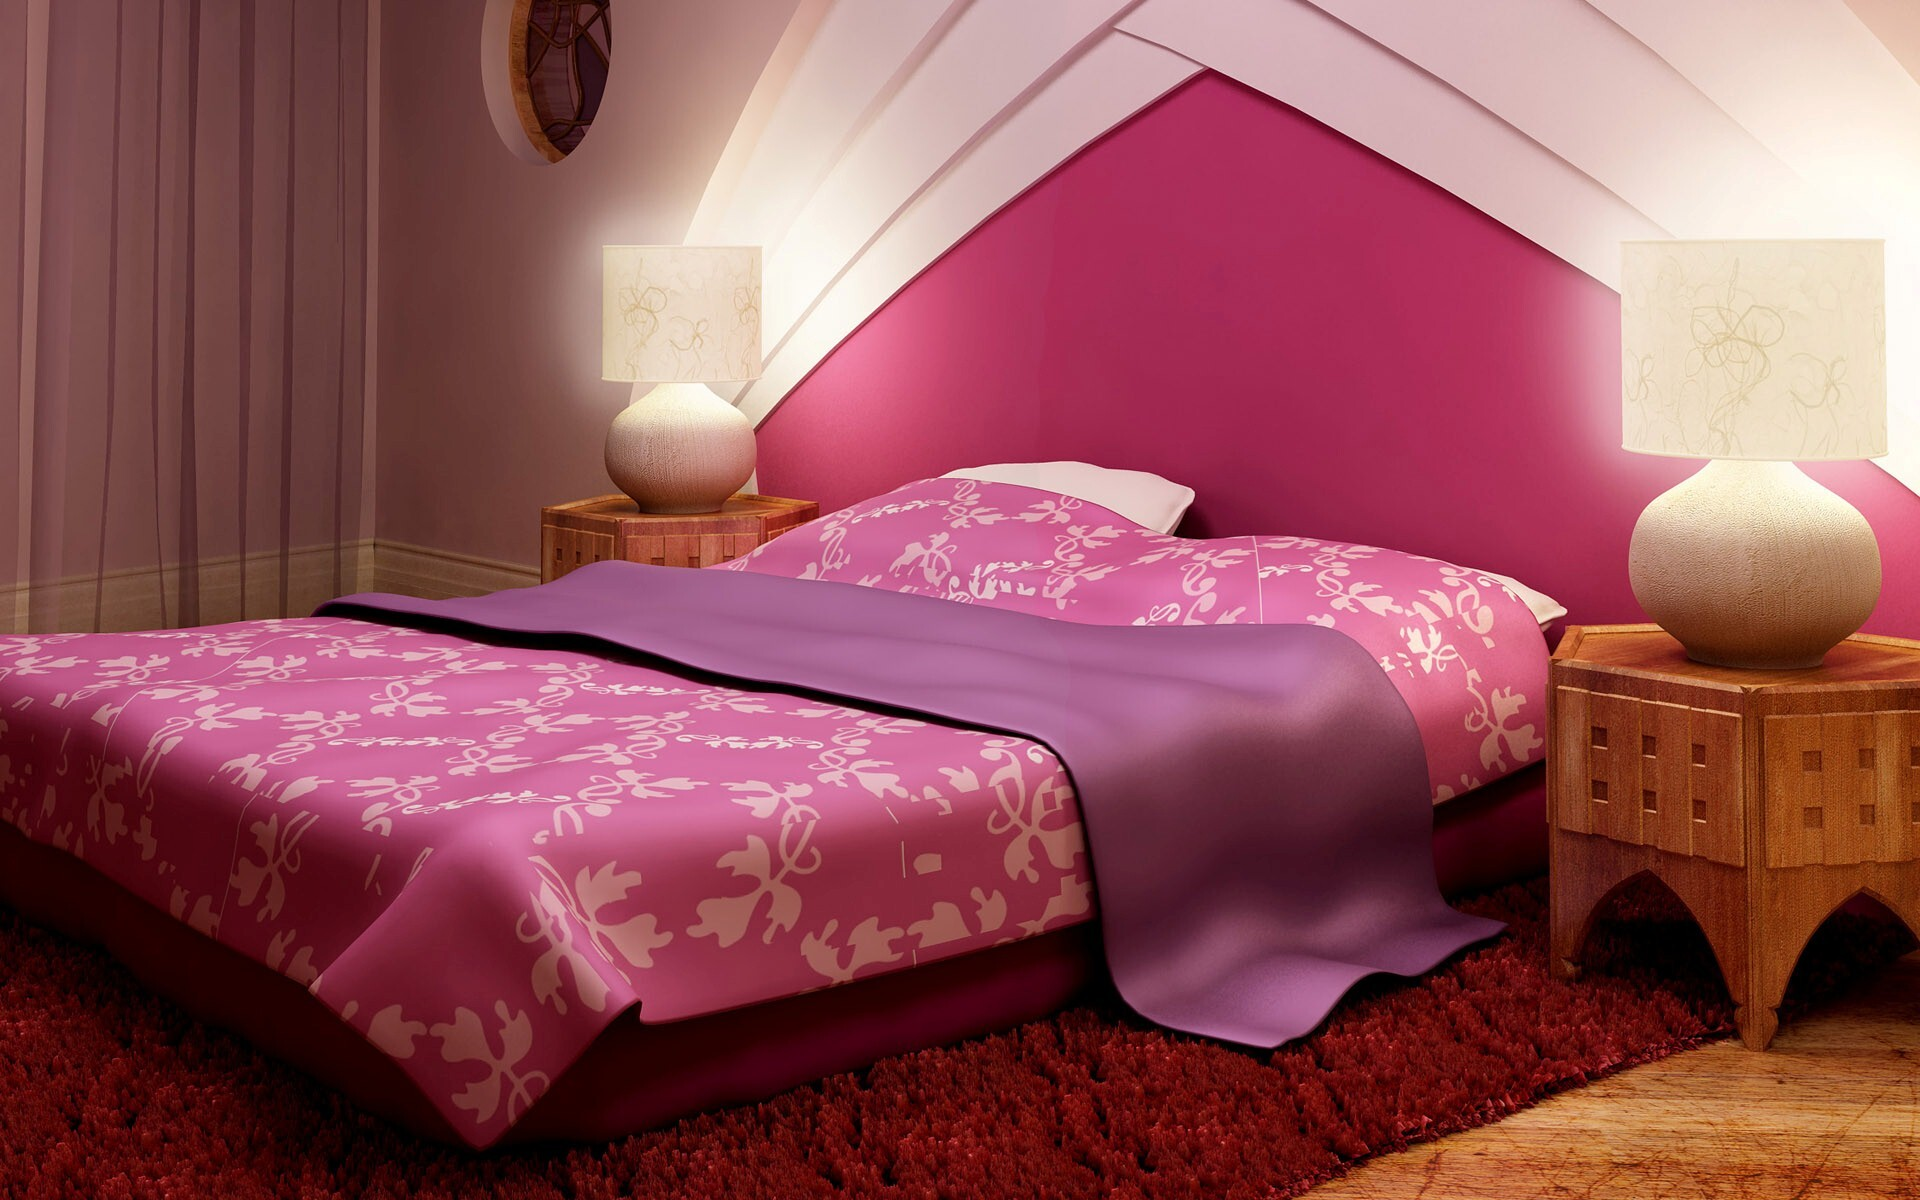 Nice Pink Bedroom Bed Interiors Images | HD Wallpapers